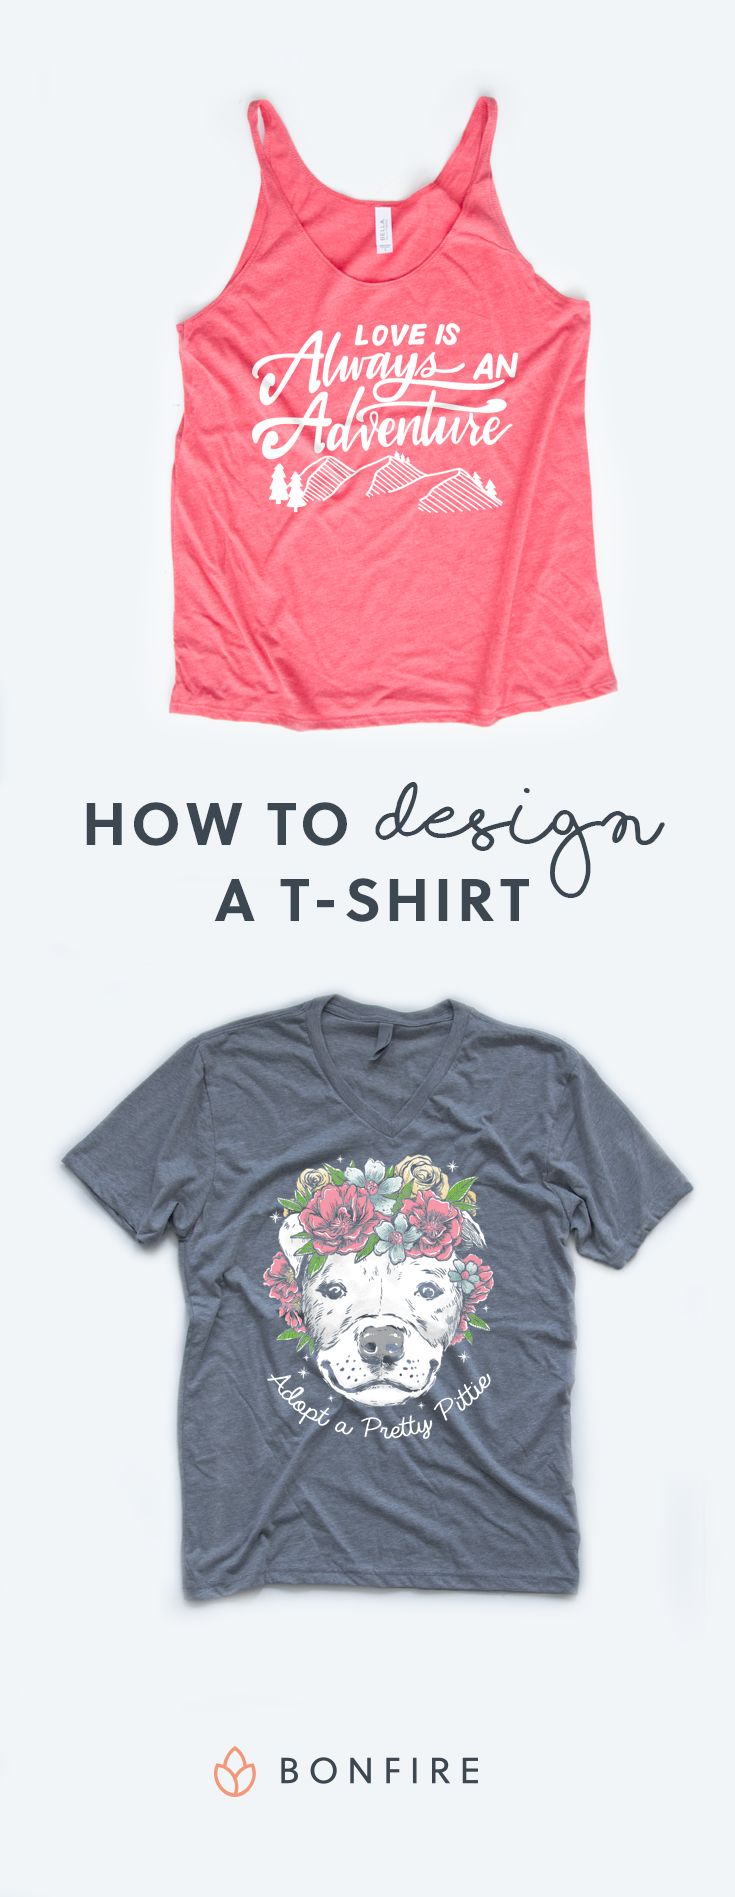 Design t shirts and sell online -  Designing Awesome T Shirts Download